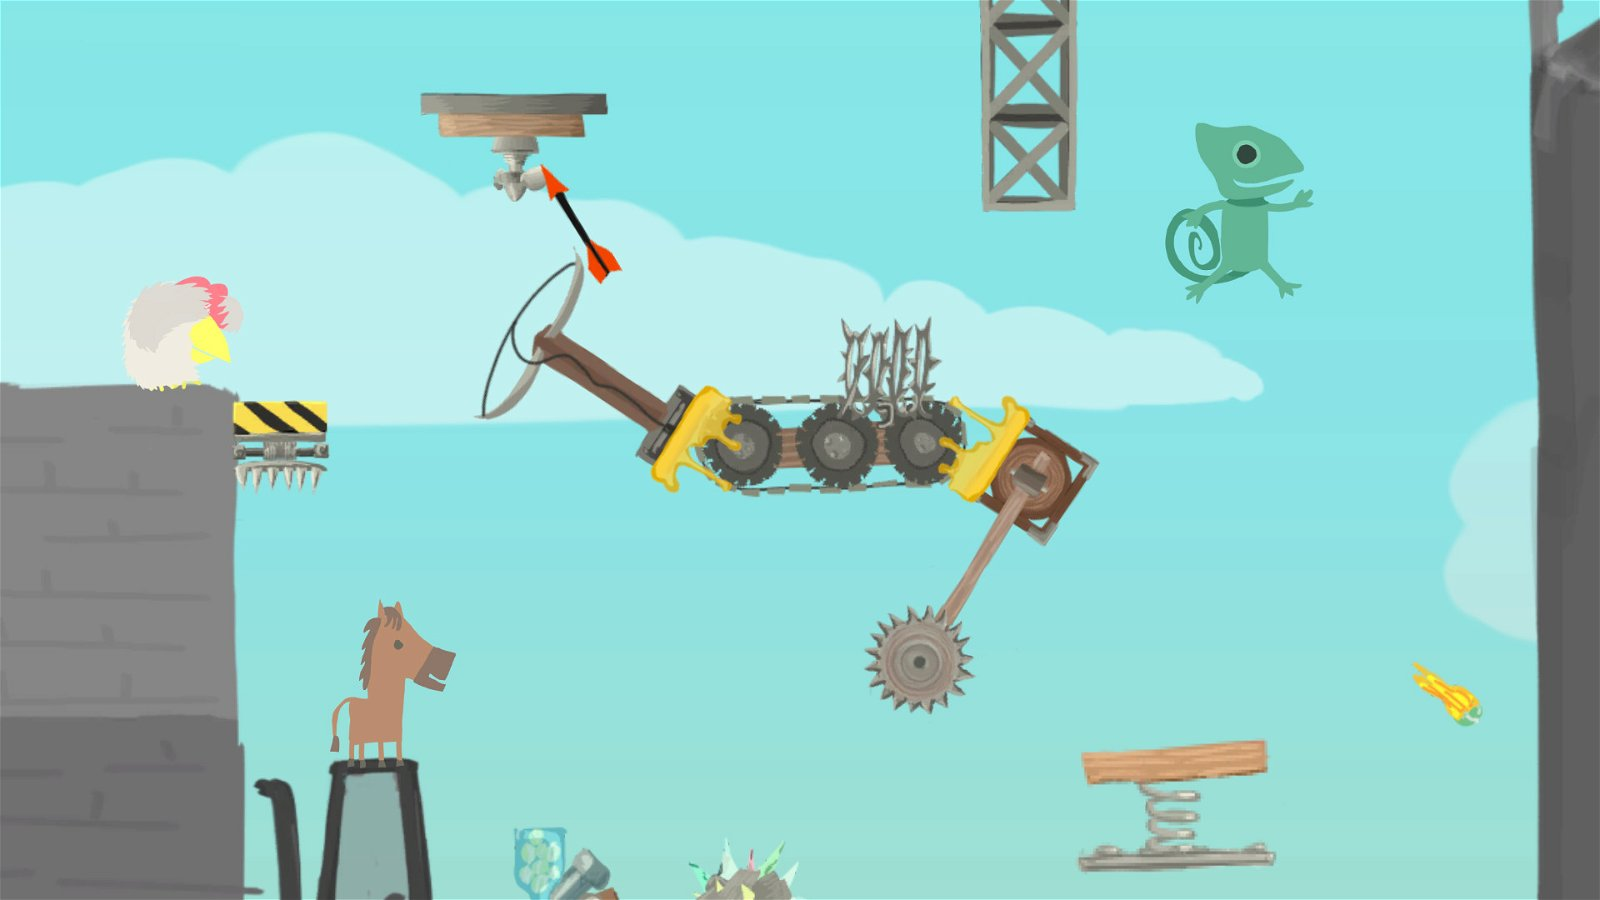 Ultimate Chicken Horse (Ps4) Review: Frenetic Multiplayer Craziness! 5